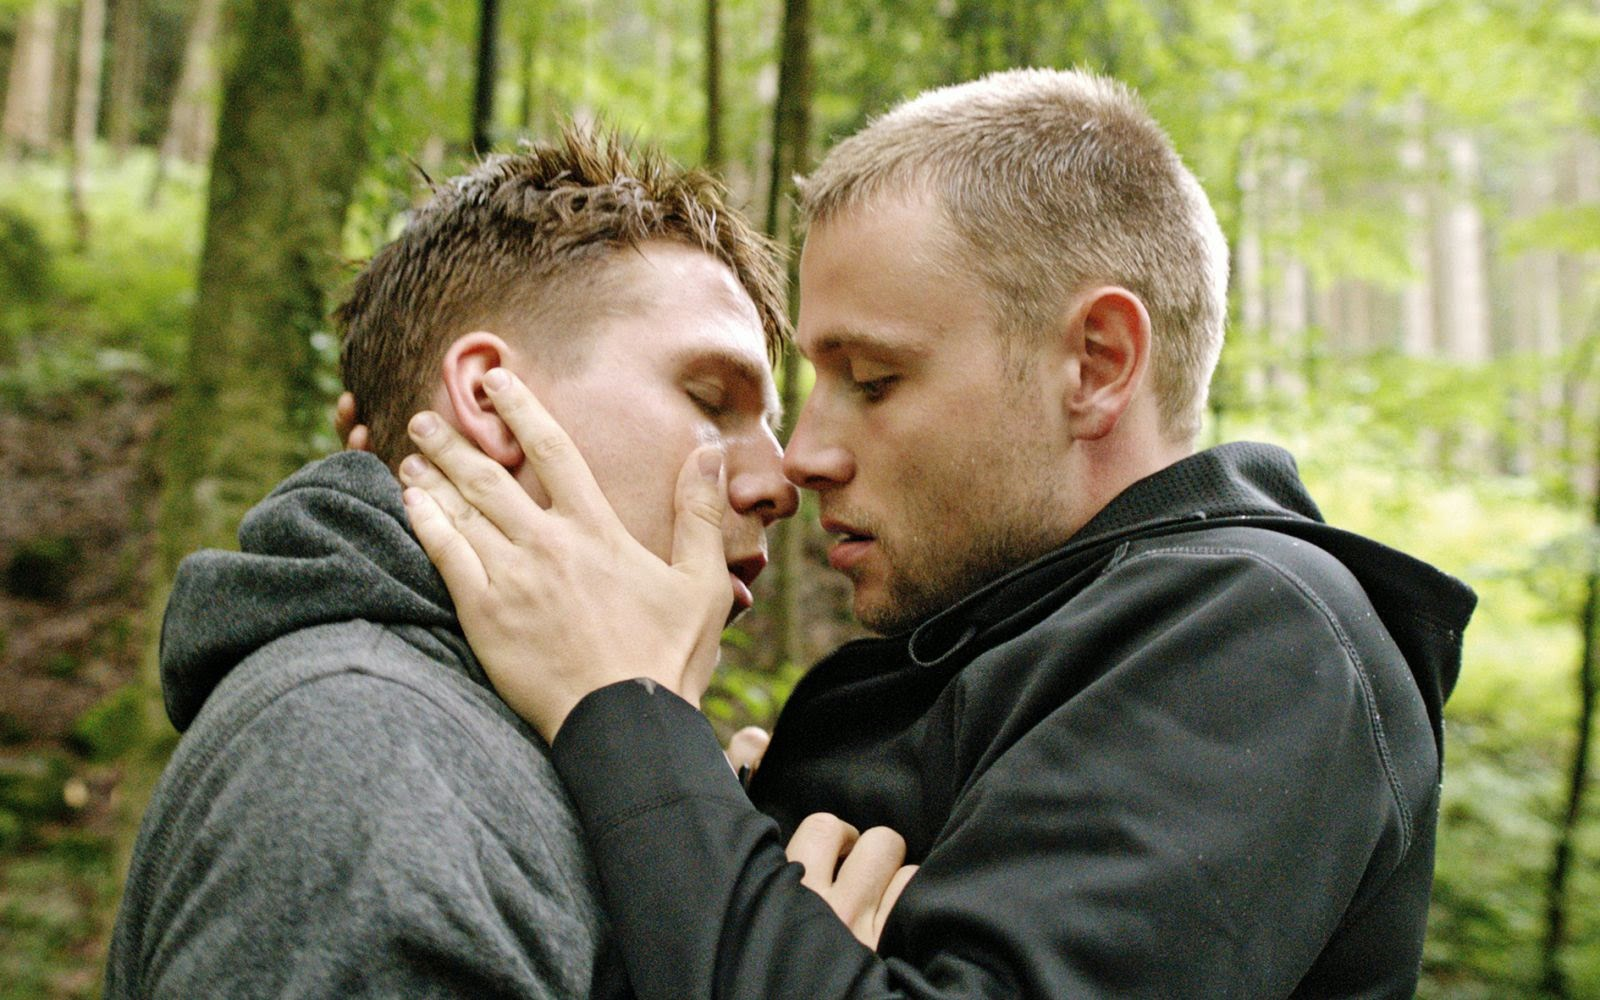 Picture of max riemelt - Tuesday August 5 2014